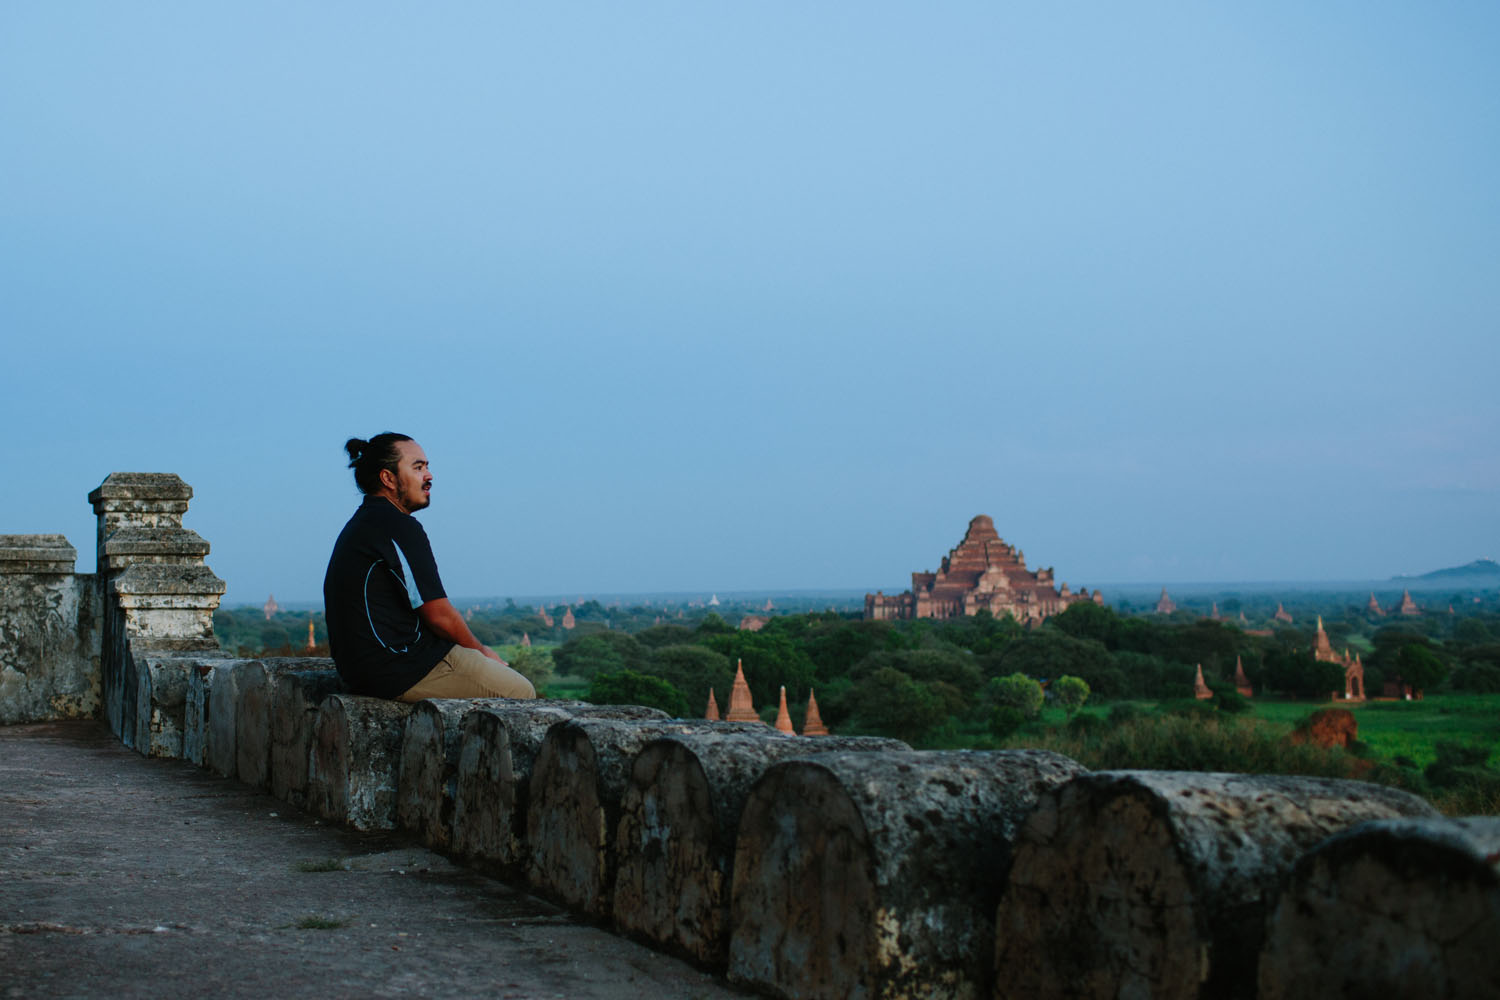 Temples at dusk in Bagan, Myanmar.